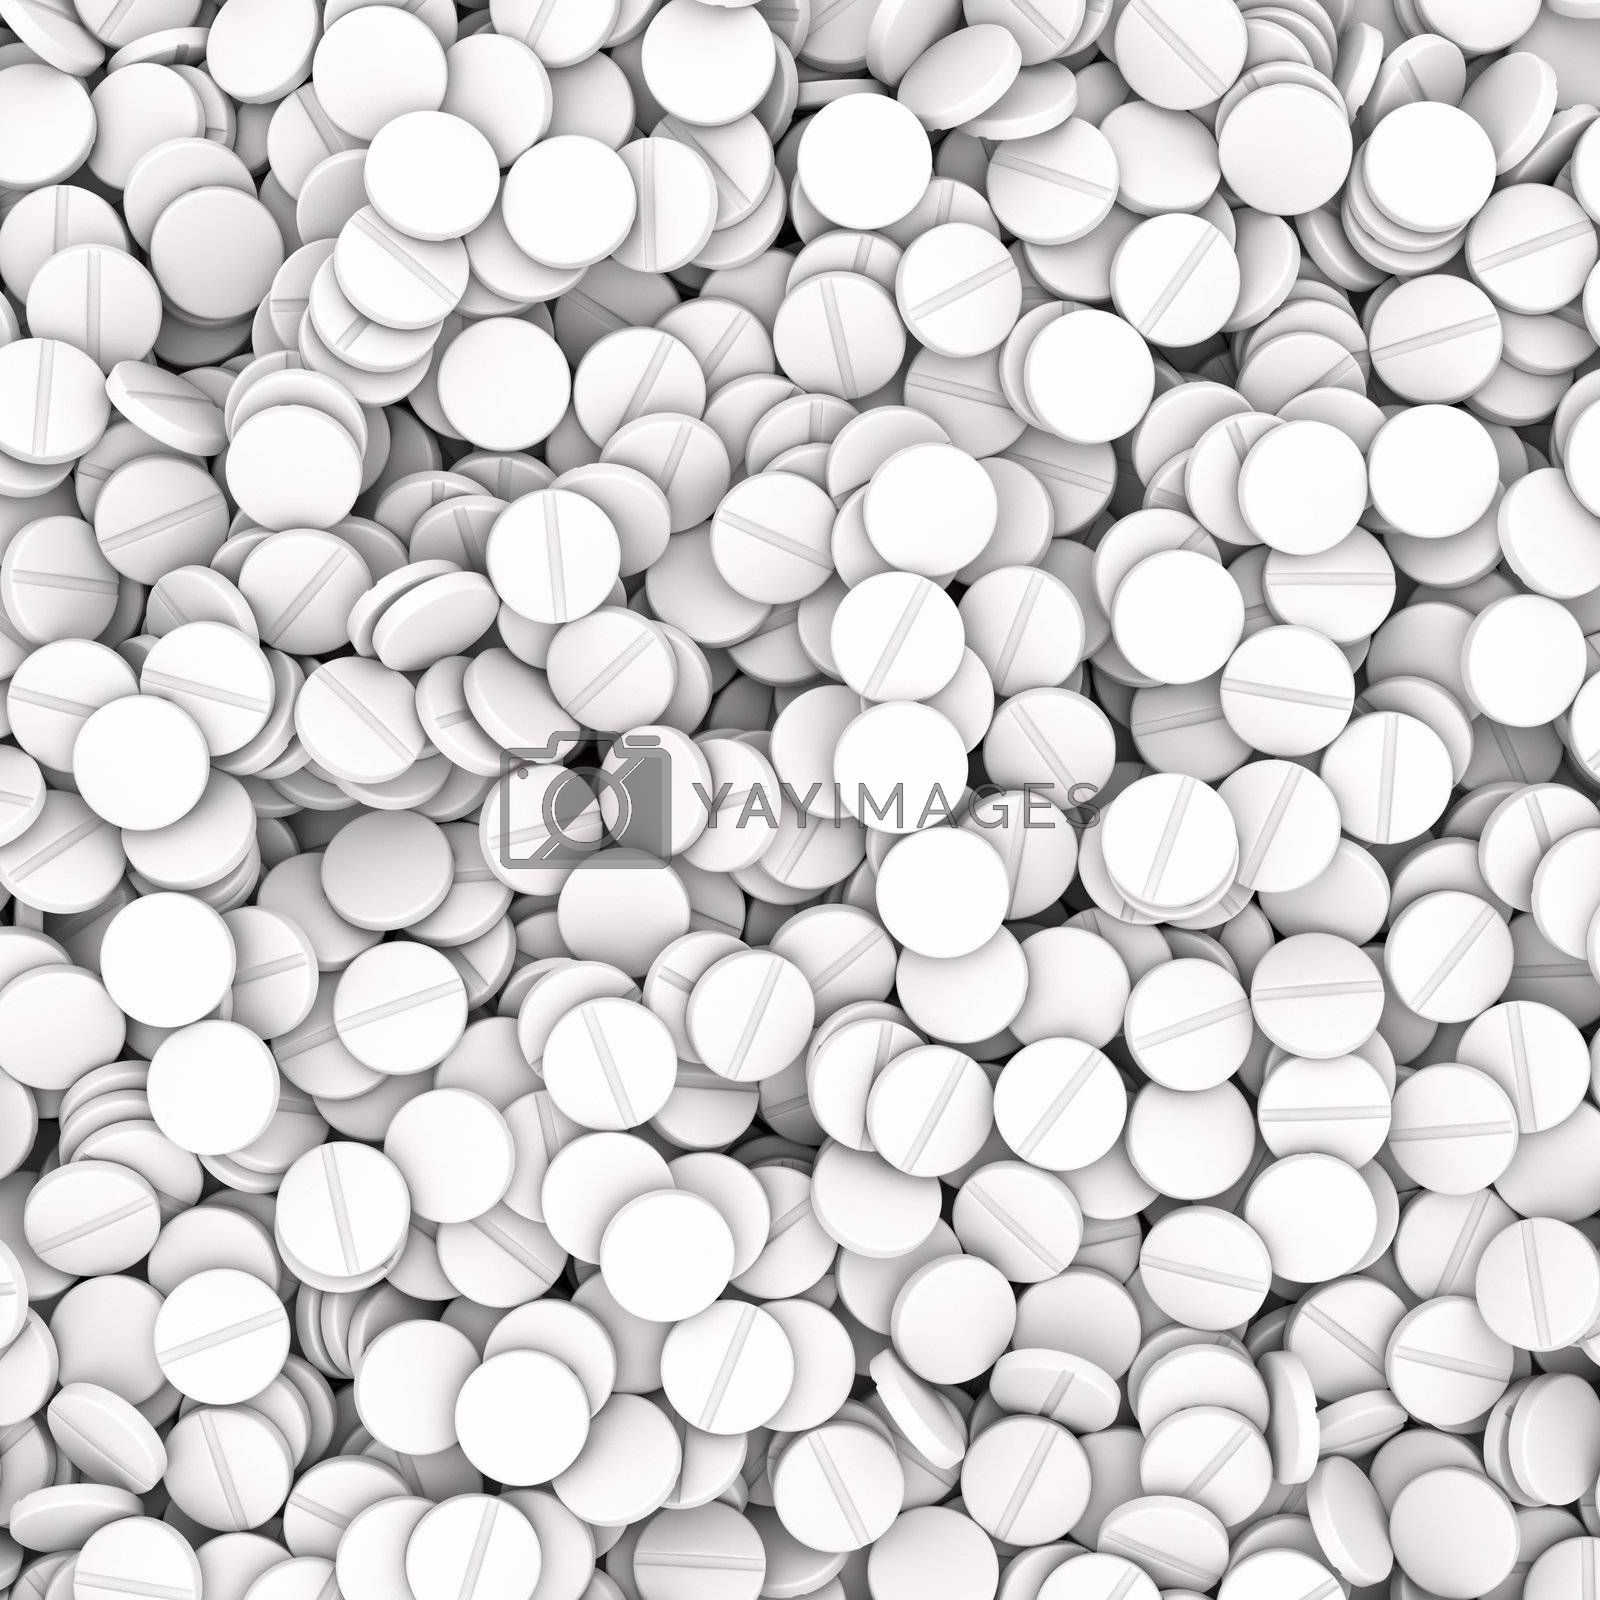 Heap of white tablets - medical background